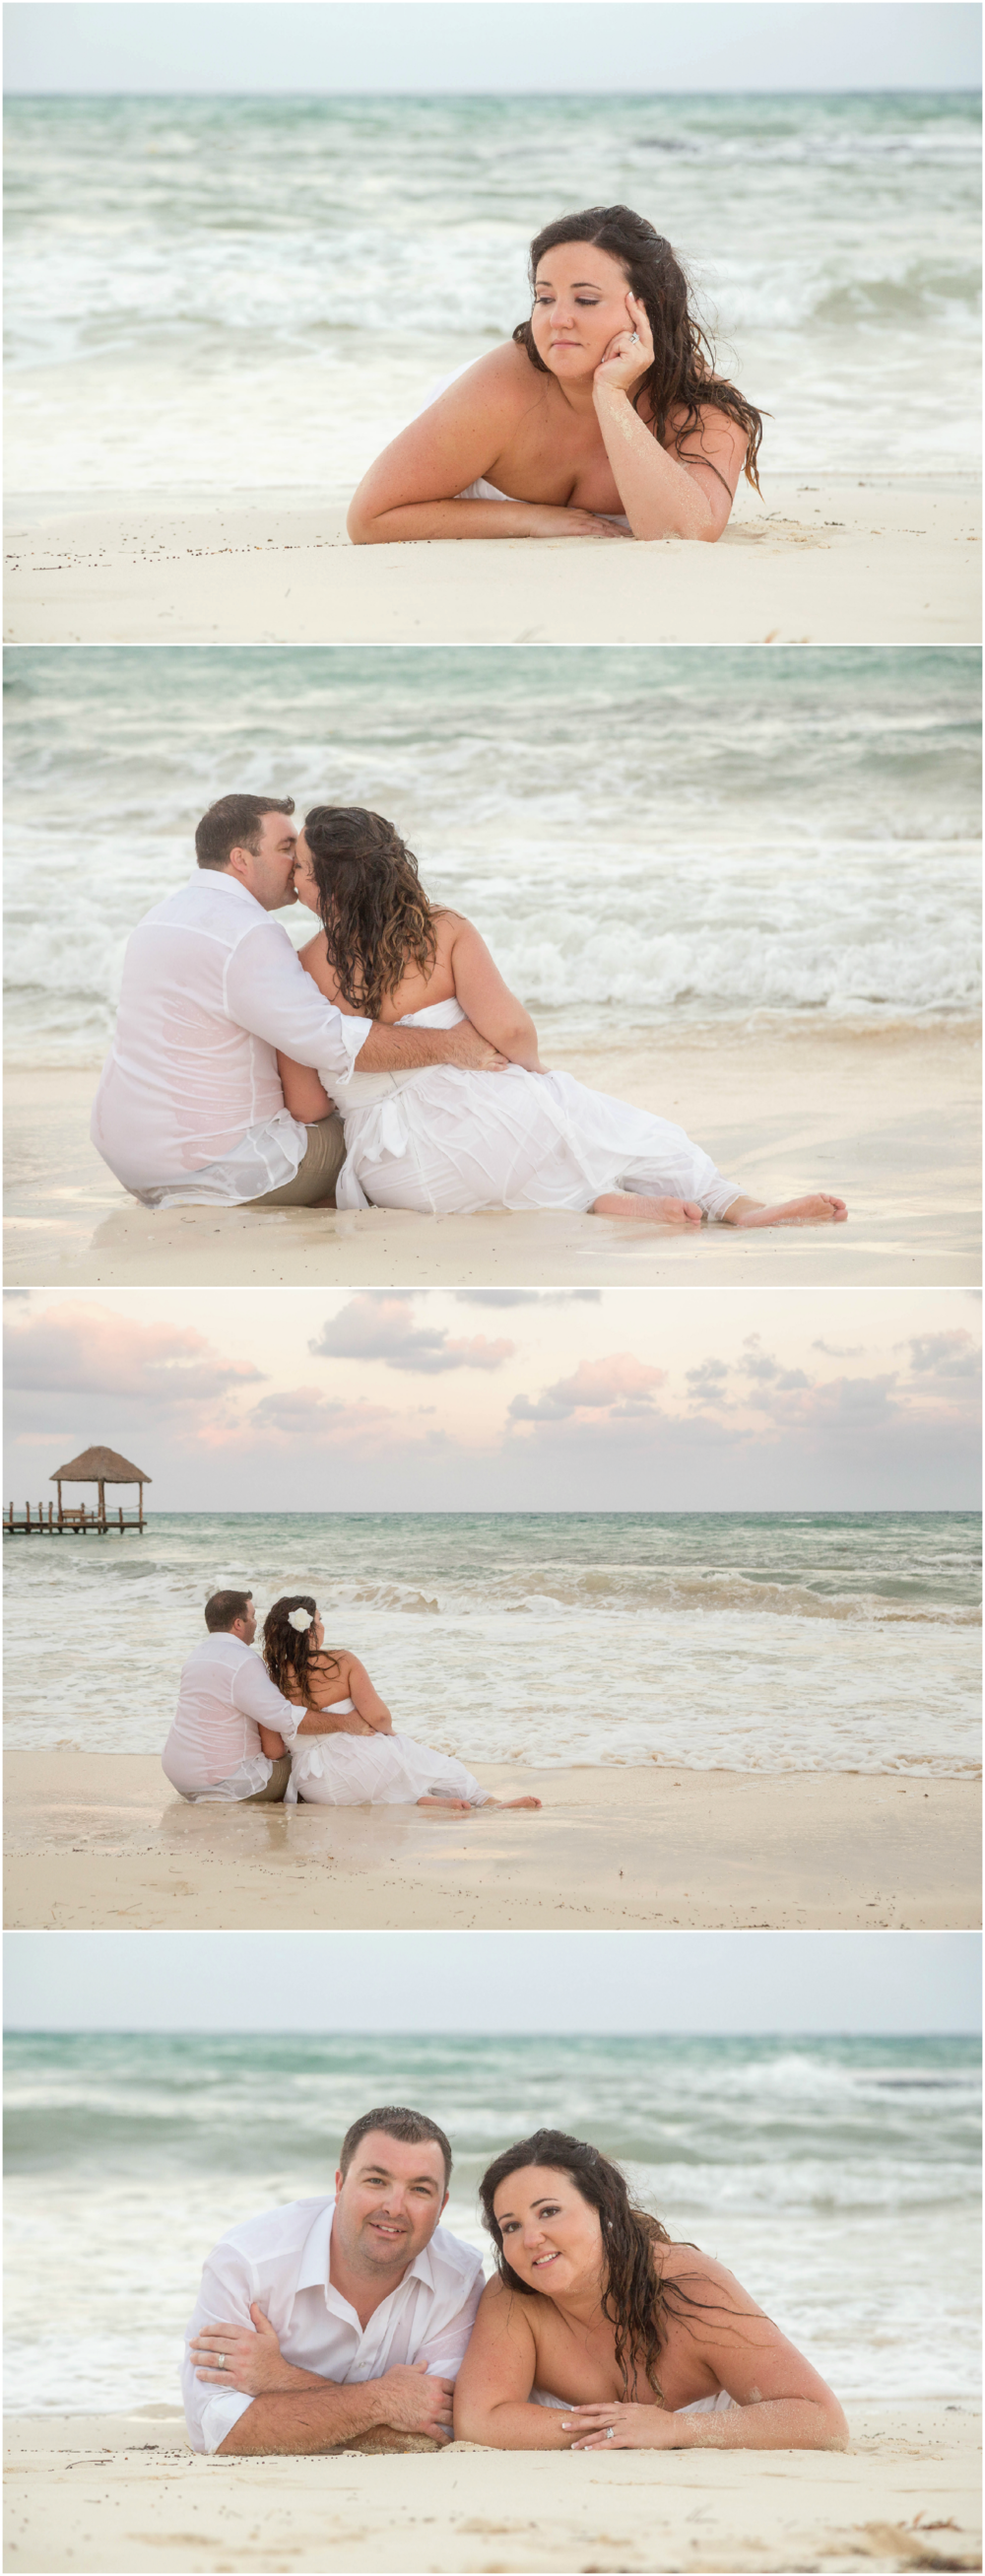 riviera-maya-wedding-ttd_9.png